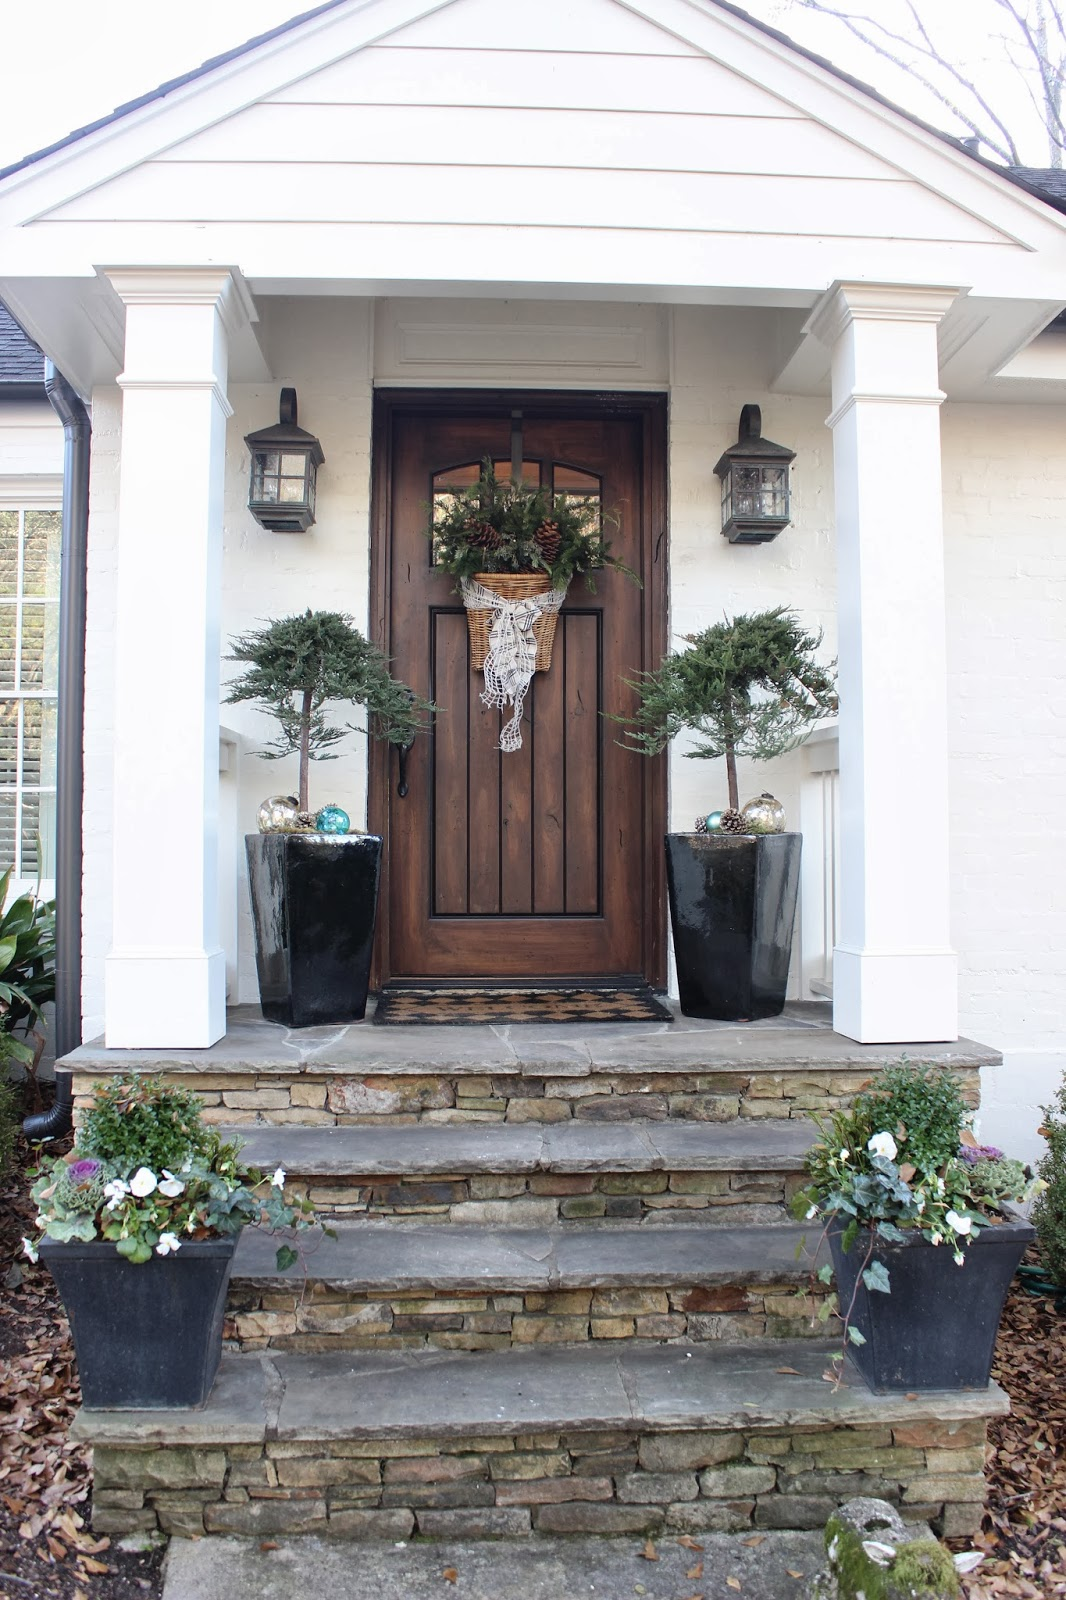 Porch columns coaches and front porches on pinterest for Front house entrance design ideas